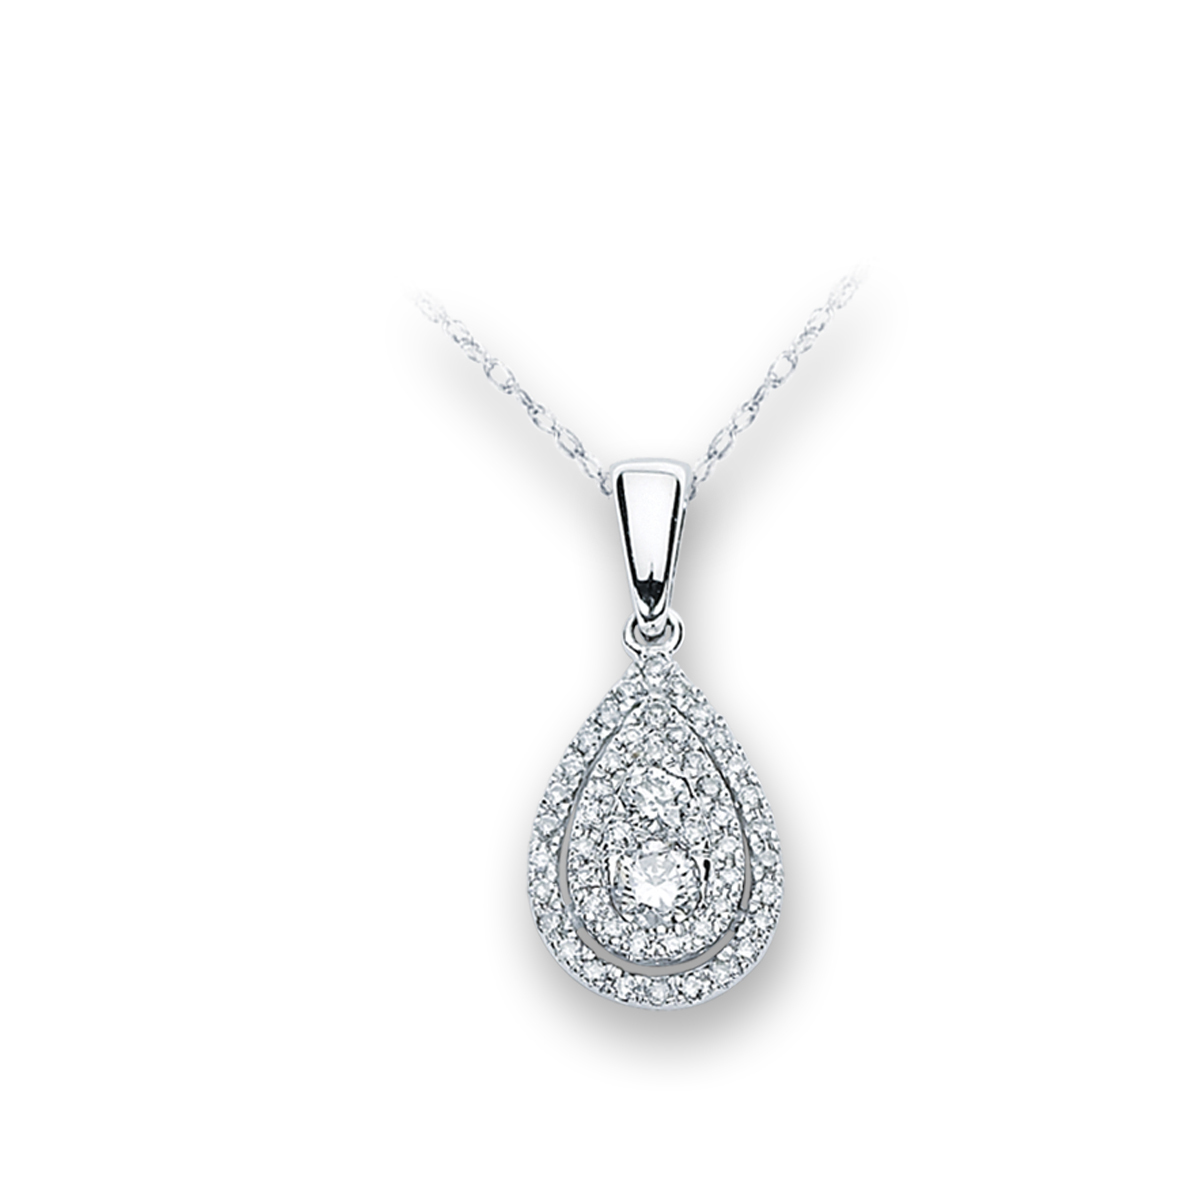 0.40Ctw Pear Shaped Halo Diamond Pendant 14KW